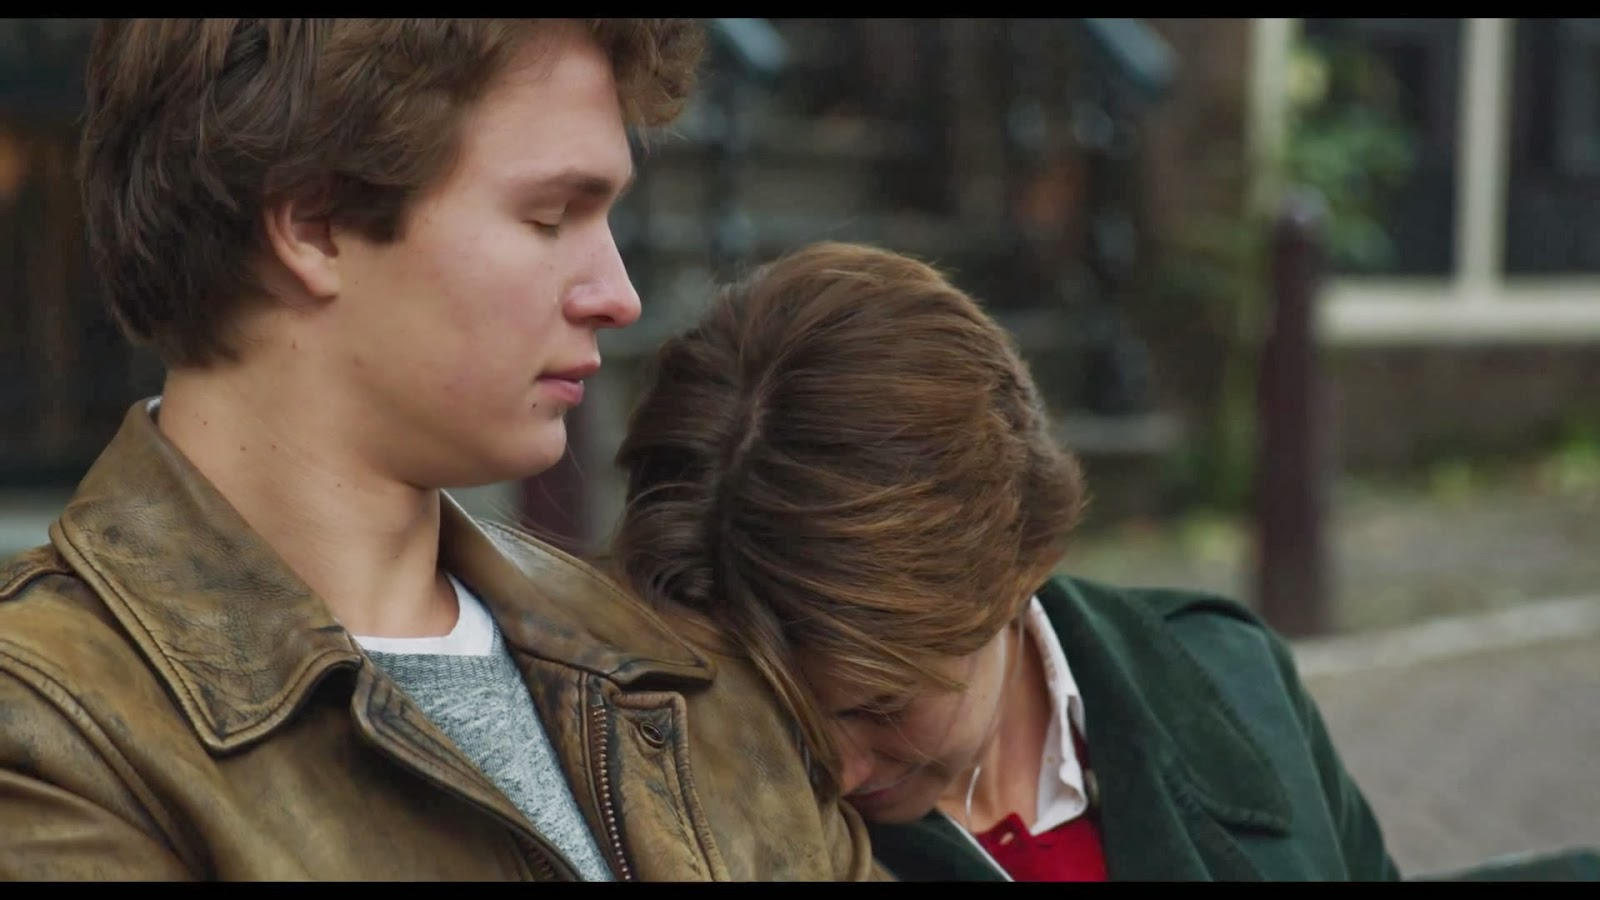 Trailer Stills of The Fault in Our Stars Movie - The Fault ...